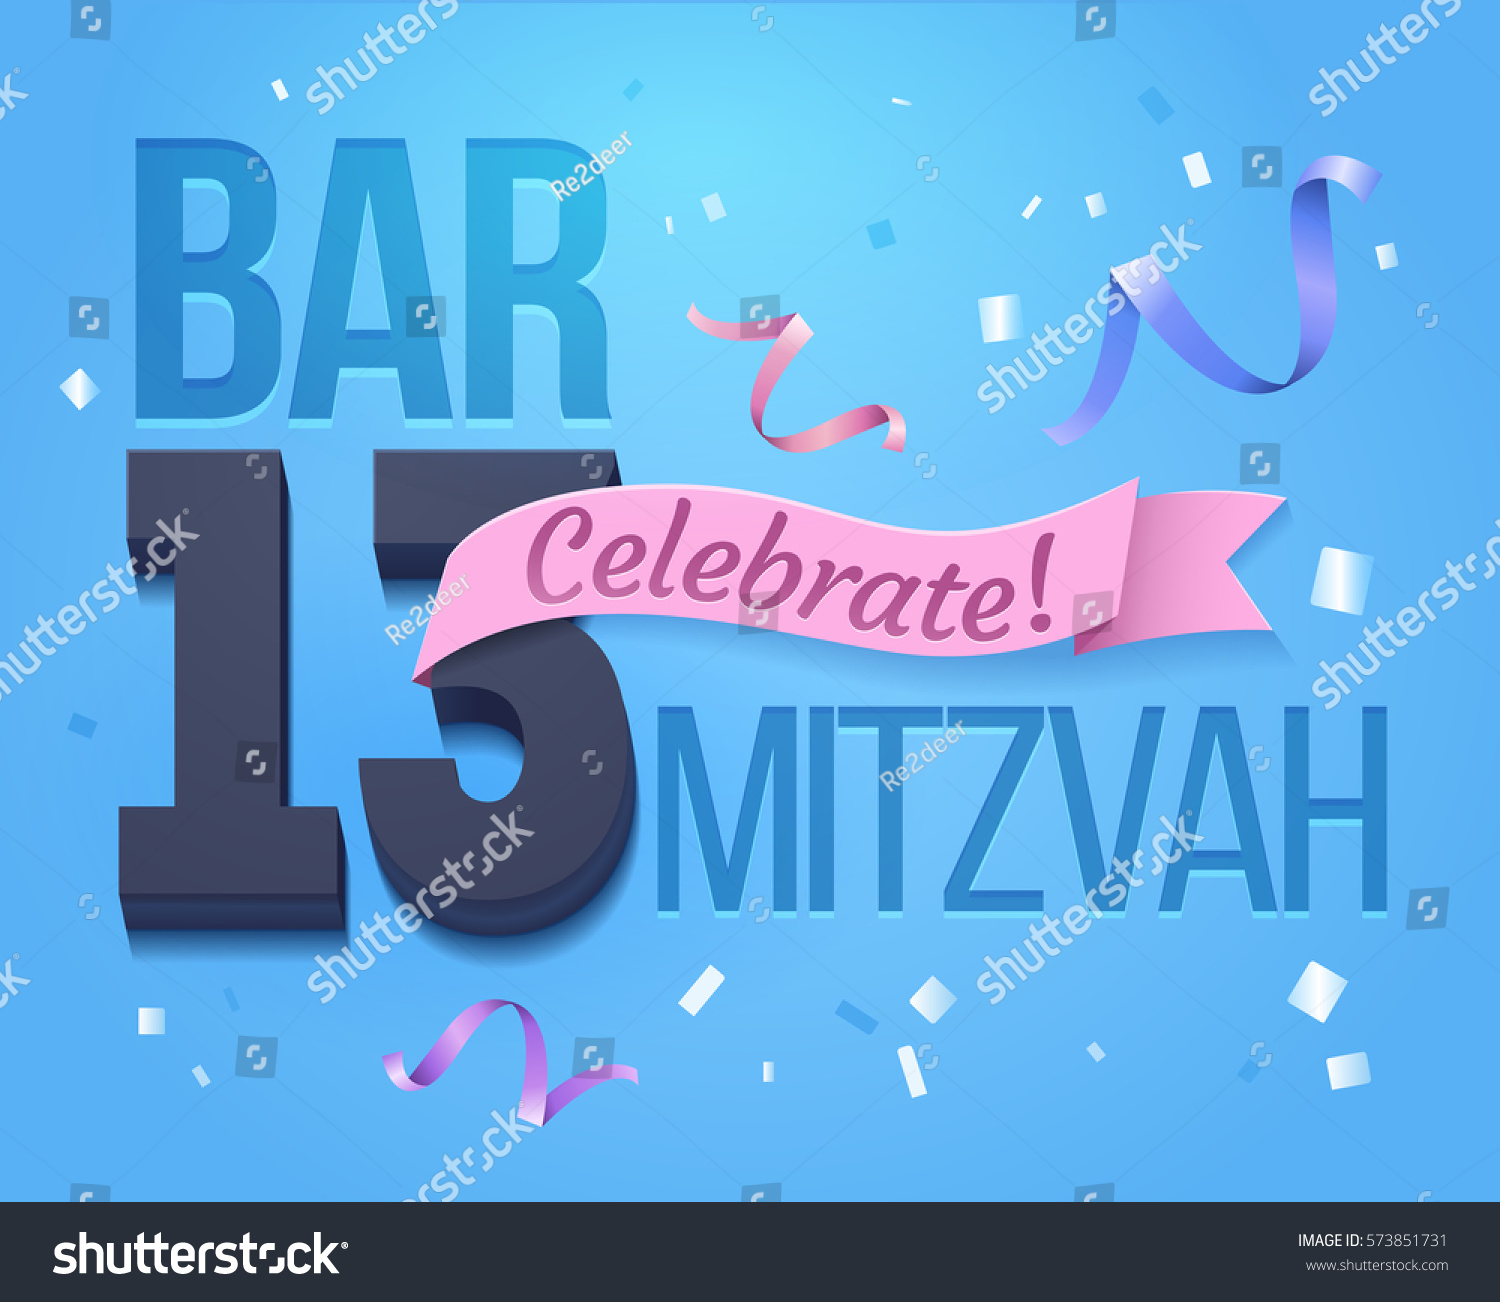 Bat Mitzvah Invitation Maker